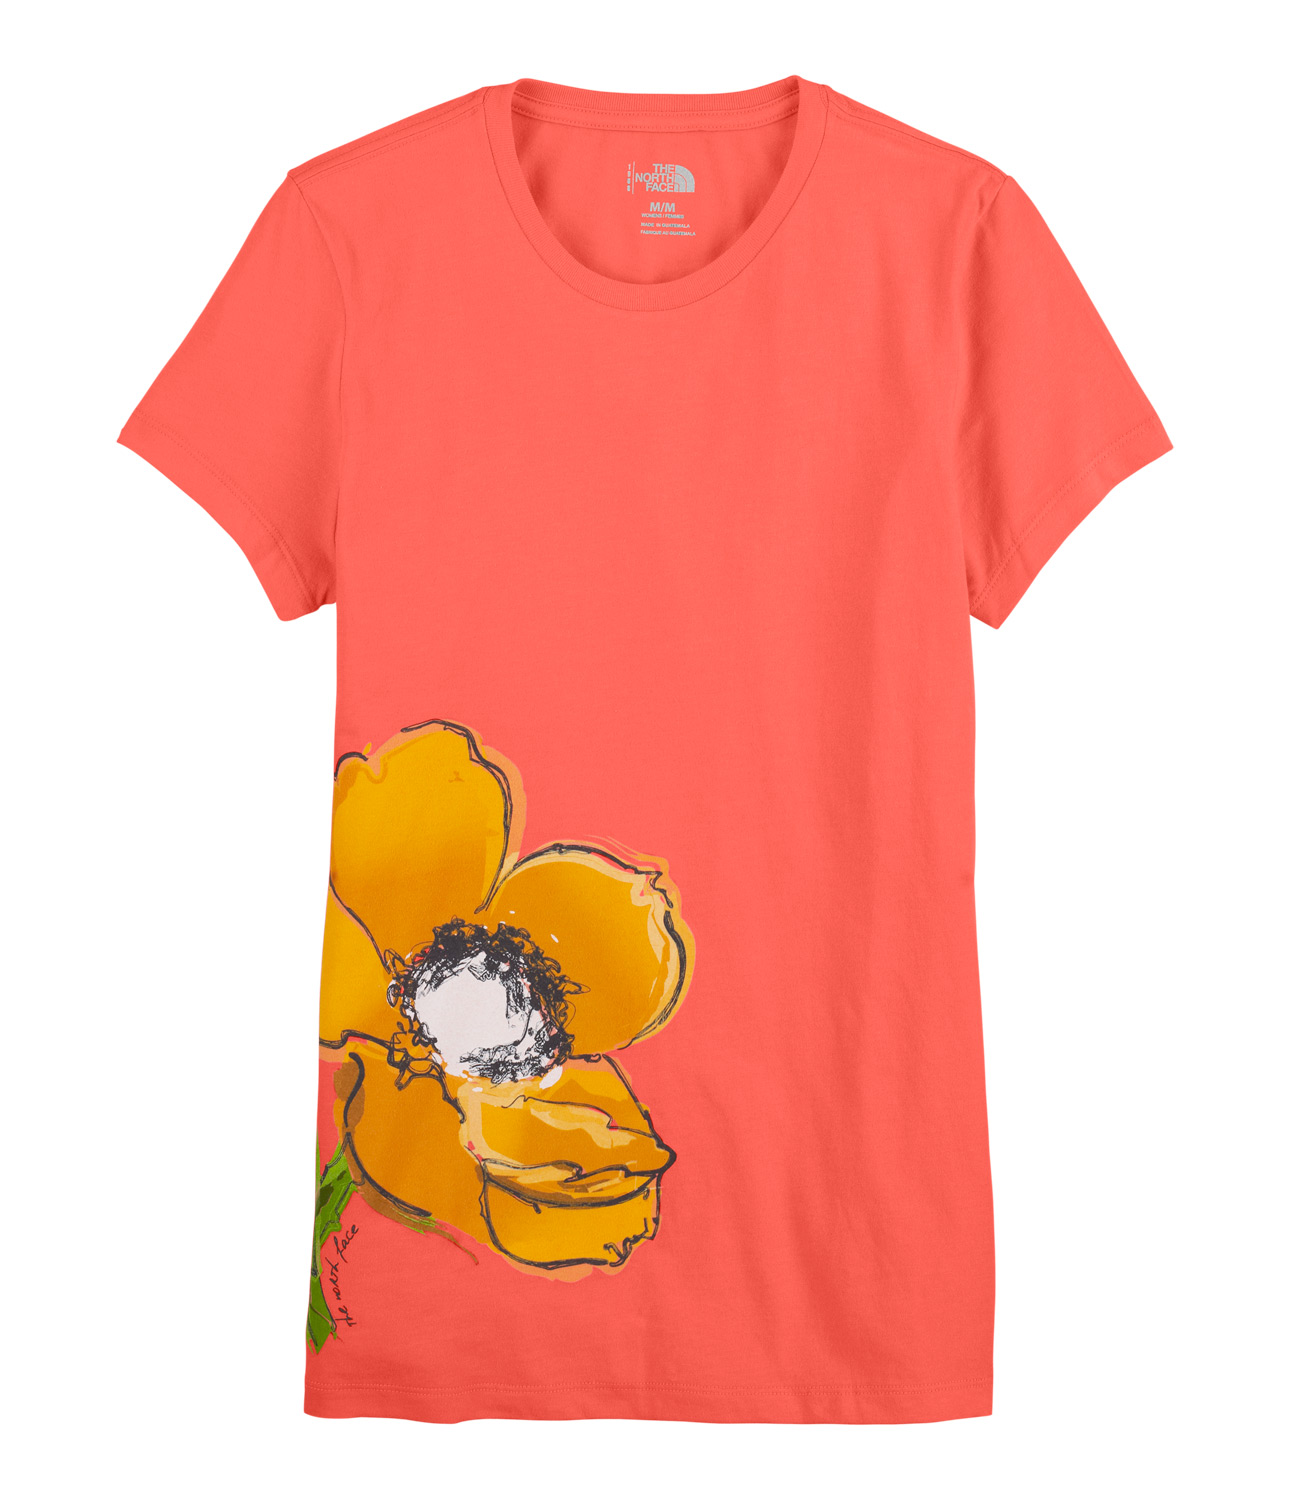 New short-sleeve tee made from soft cotton fabric for comfort at the crag or around town. Colorful flower in a water color painted effect at lower front. Slight rib at collar.Key Features of The North Face Painted Flower T-Shirt: Comfortable, lightweight, easy-care fabric 1x1 rib on collar Graphic in water-based print with water color painted effect - $9.95